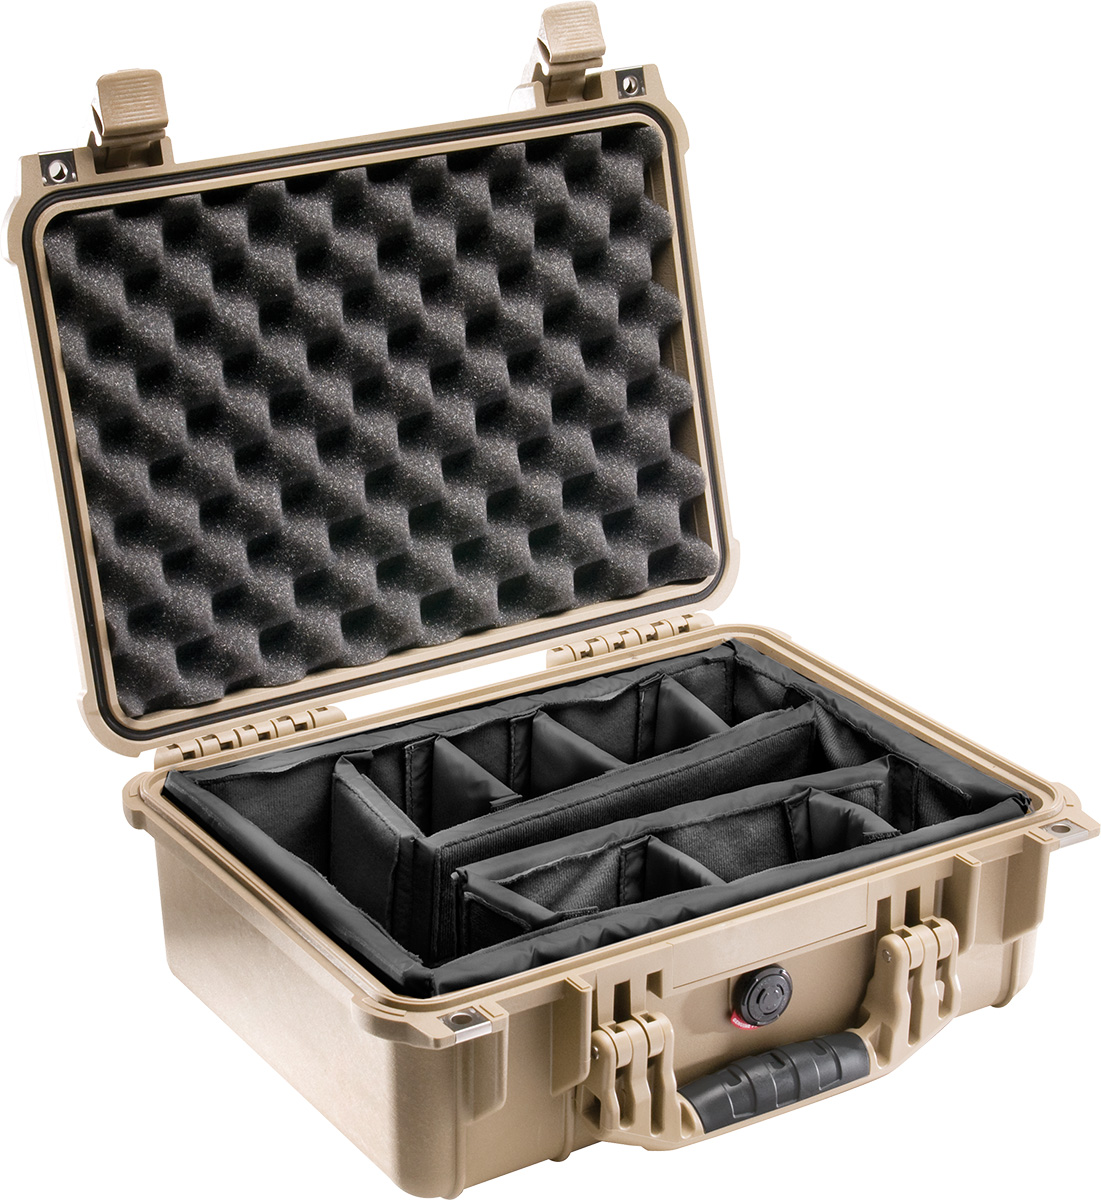 pelican 1450 1454 watertight protector case